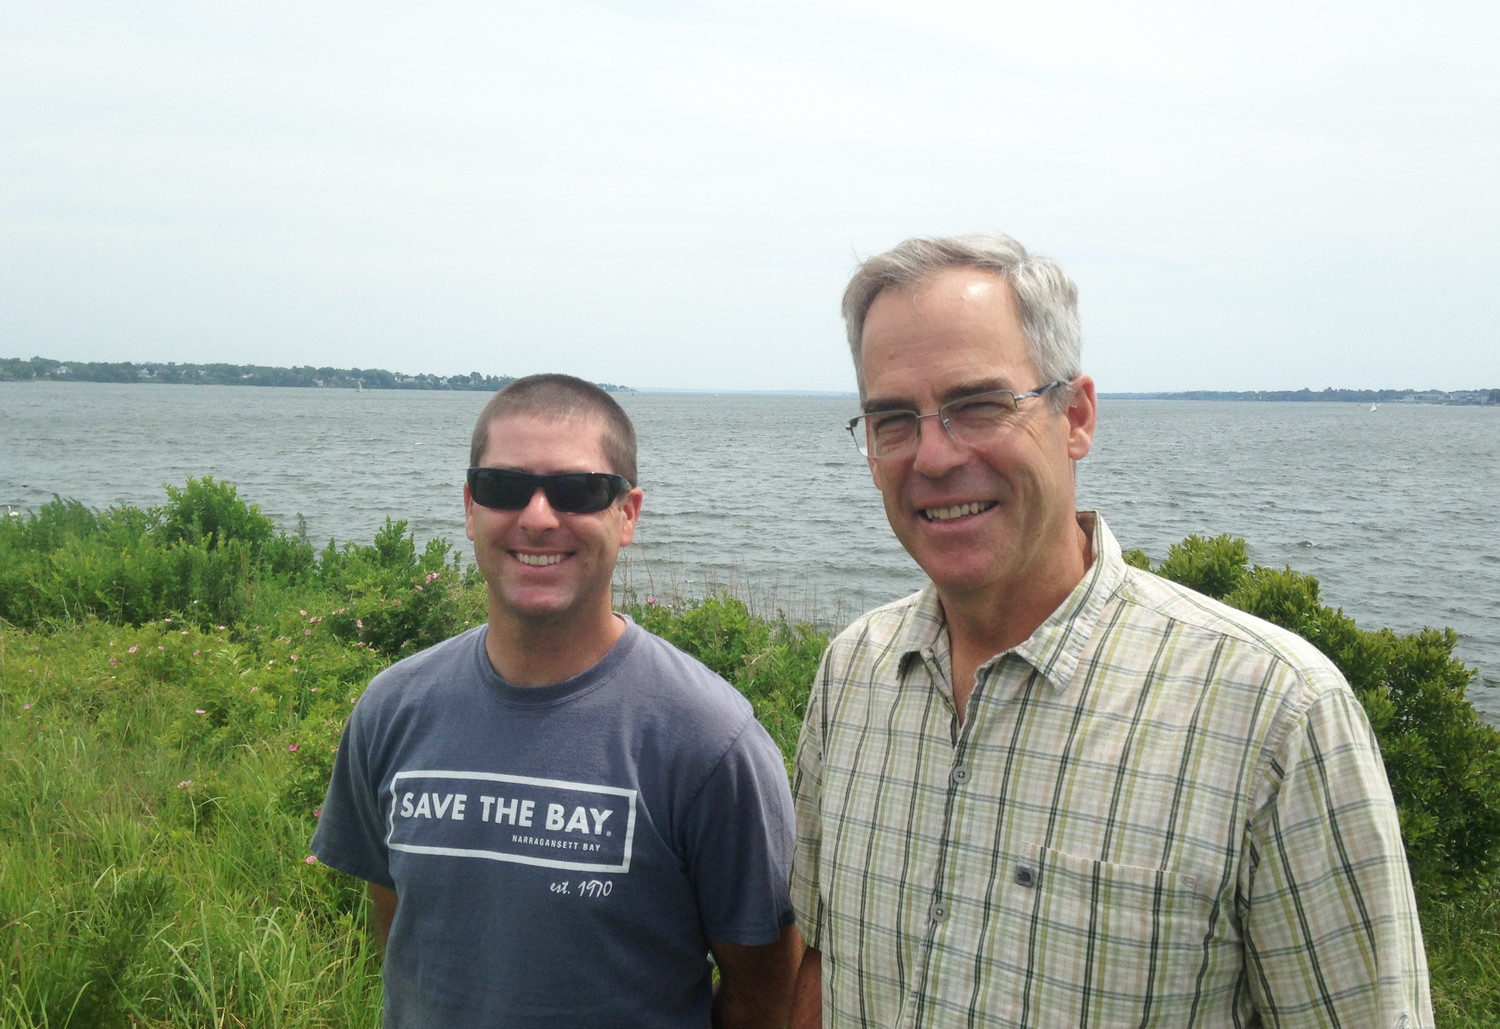 Baykeeper Mike Jarbeau and Executive Director Jonathan Stone outside Save The Bay headquarters in Providence.